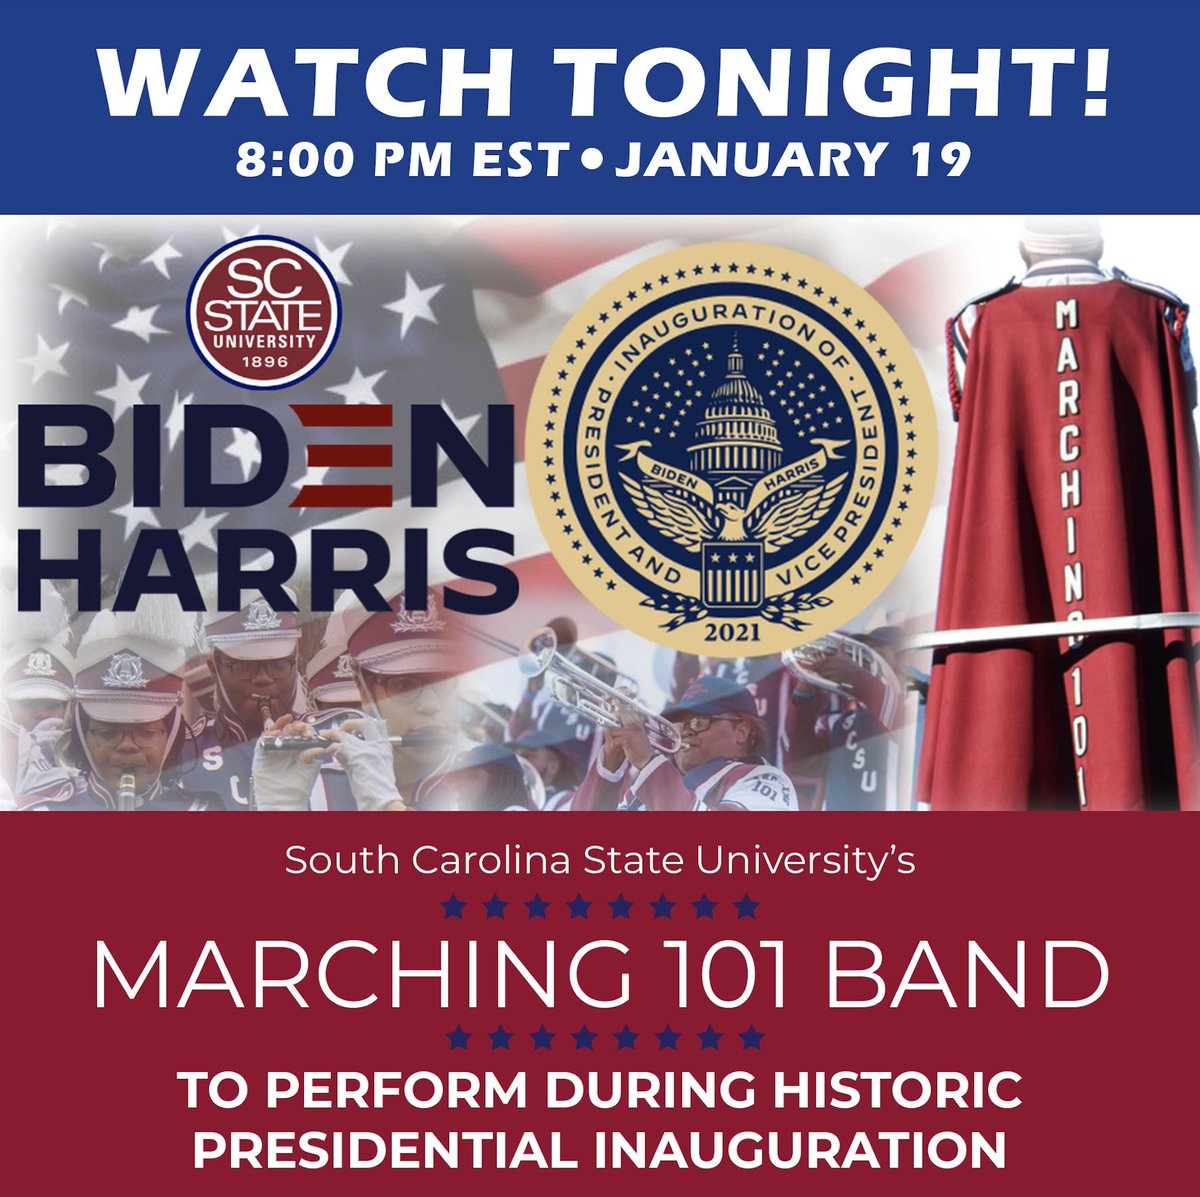 WATCH TONIGHT at 8 pm EST! SC State Univ.'s Marching 101 Band and SC State alum @csmusician (Ranky Tanky) are among tonight's performances. Alumnus and House Majority @WhipClyburn will provide remarks during the event.   Watch here:   #inauguration2021